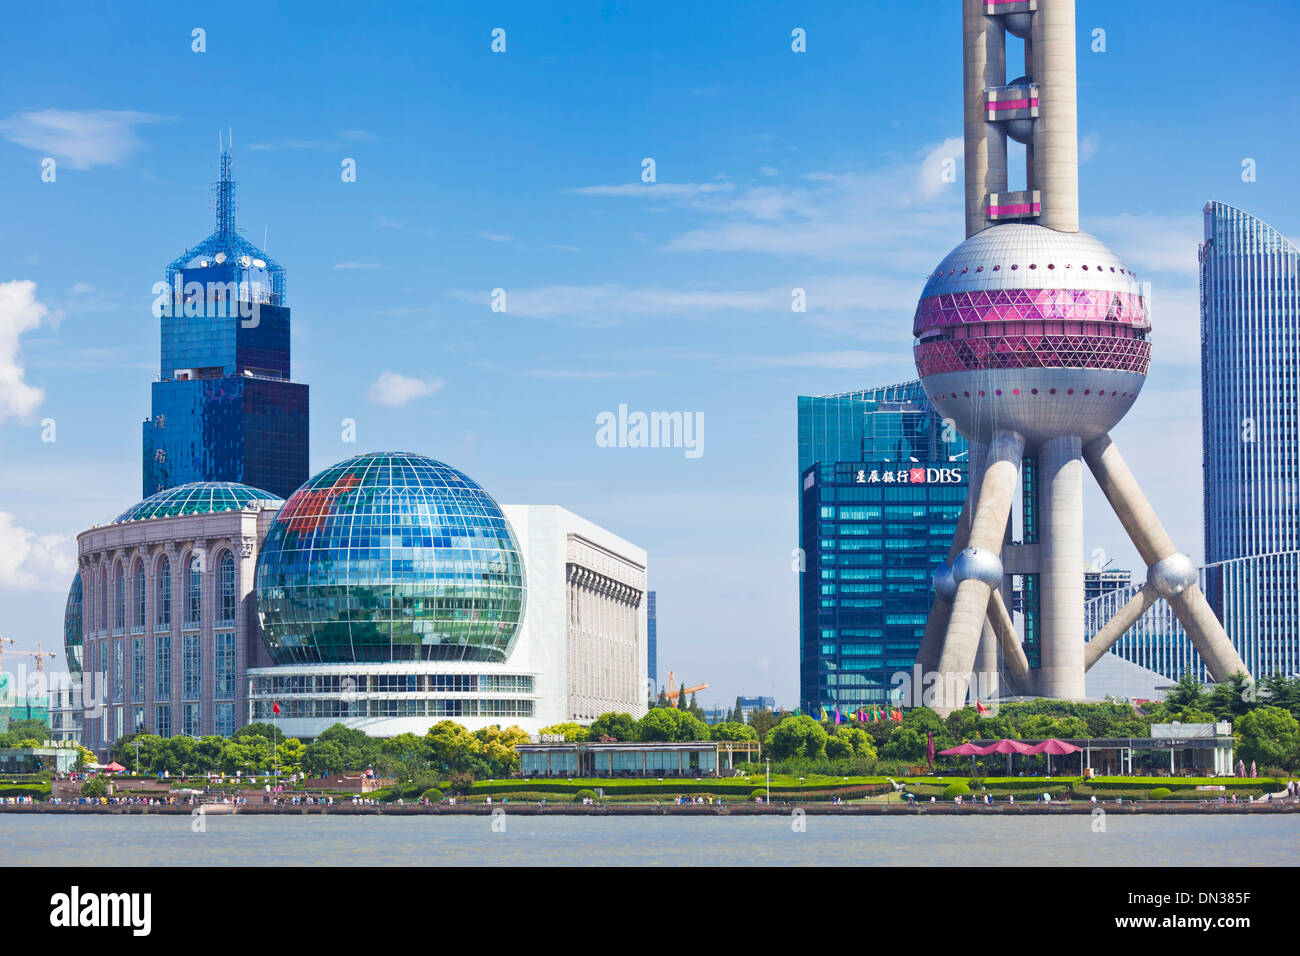 Les toits de Shanghai, perle de l'Orient et à l'International Convention Centre, République populaire de Chine, République populaire de Chine, l'Asie Photo Stock